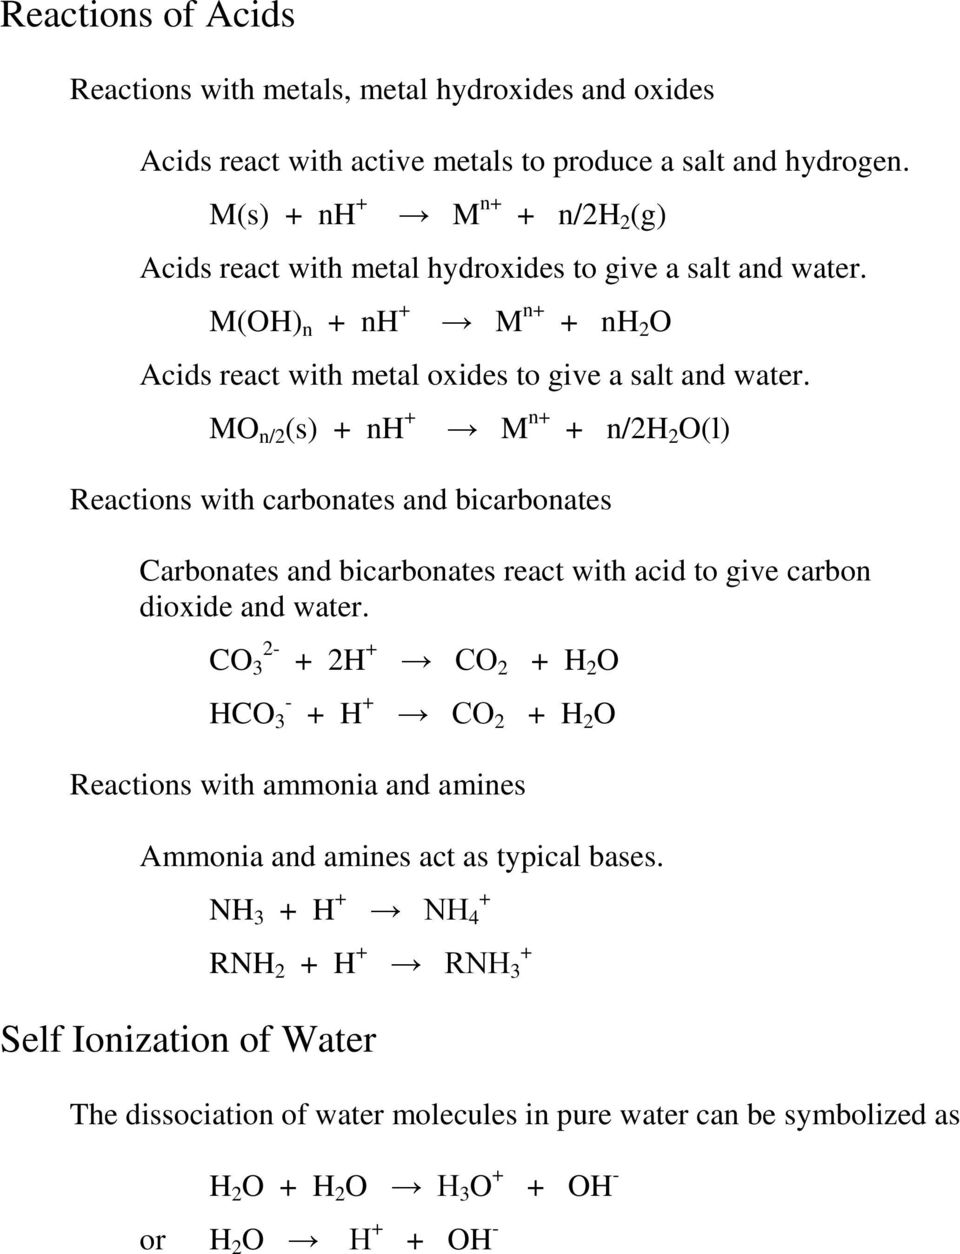 MO n/2 (s) + nh + M n+ + n/2h 2 O(l) Reactions with carbonates and bicarbonates Carbonates and bicarbonates react with acid to give carbon dioxide and water.